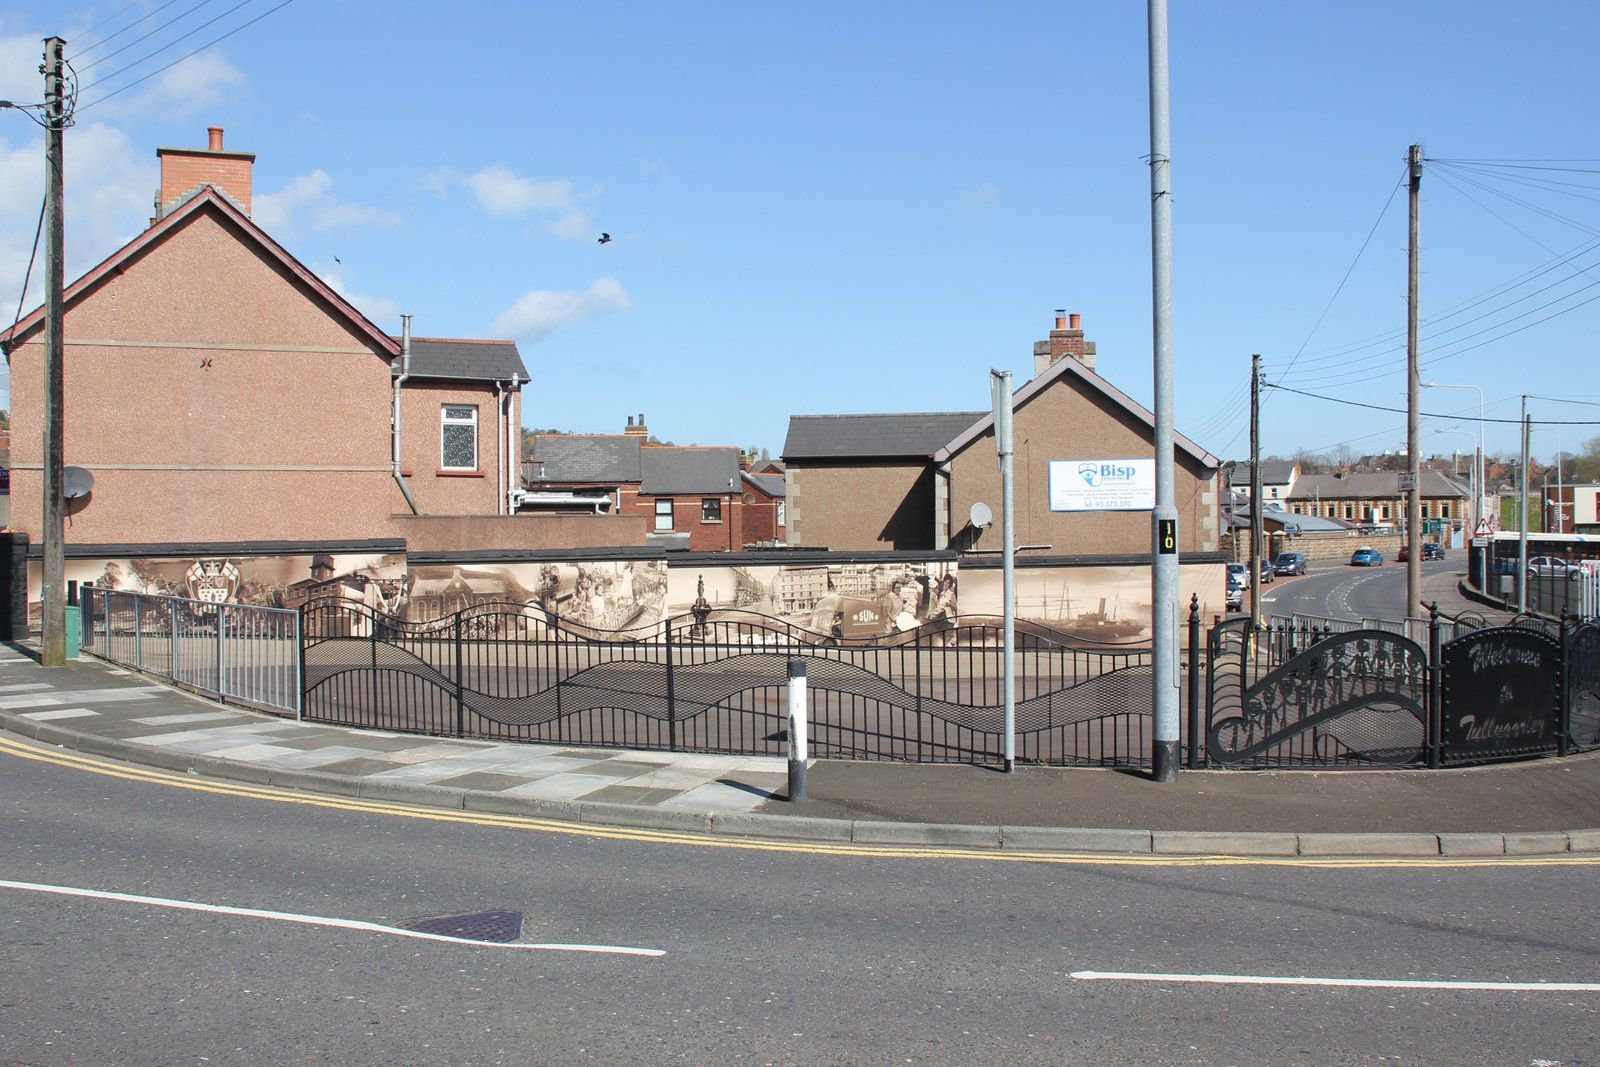 568) Bank Road, Larne